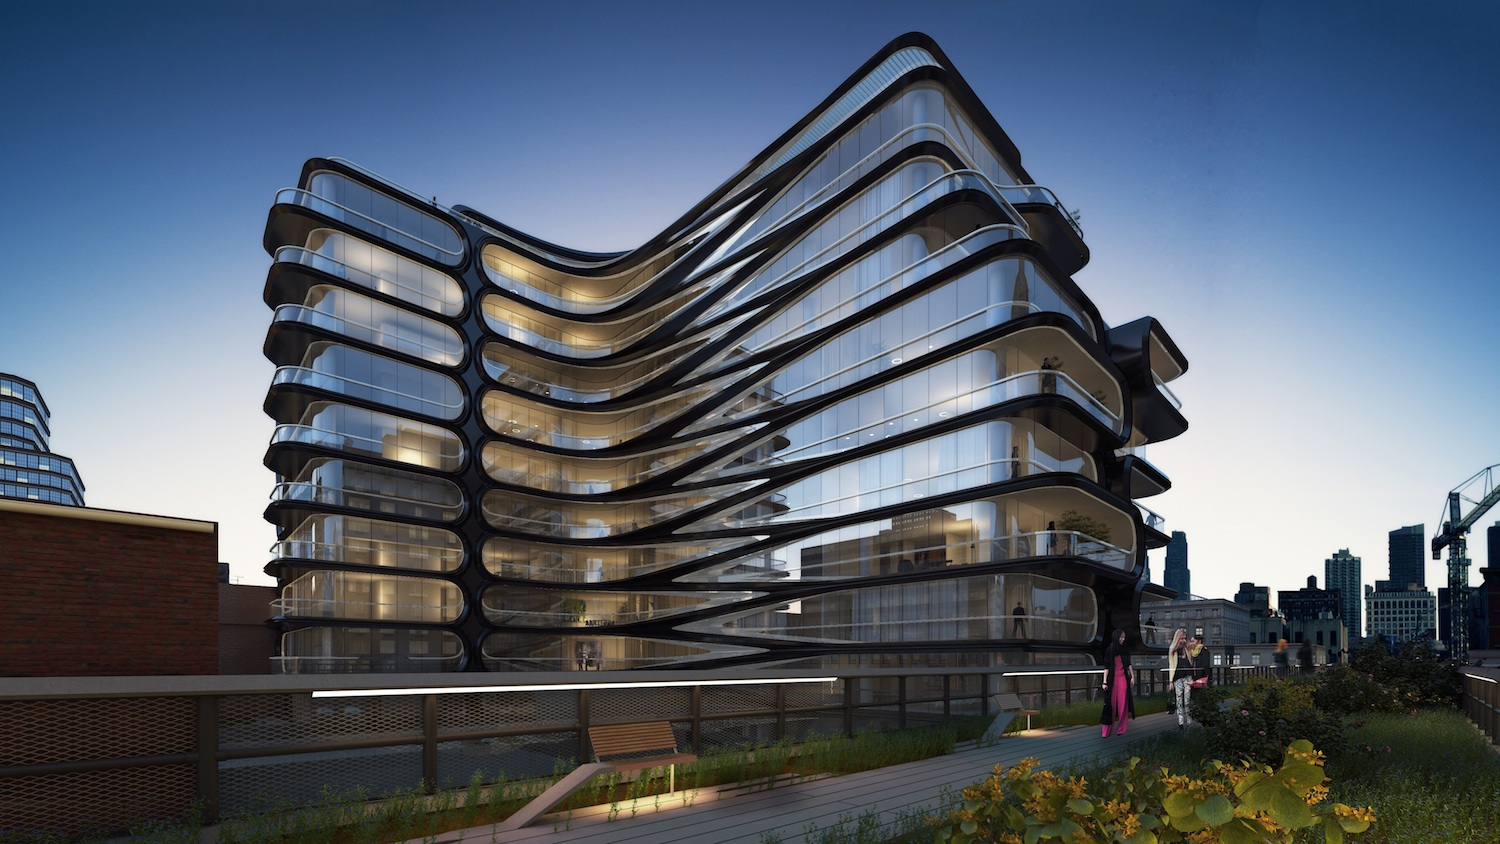 520 west 28th, zaha hadid, starchitecture, starchitecture nyc, zaha hadid's first nyc project, zaha hadid nyc, related companies